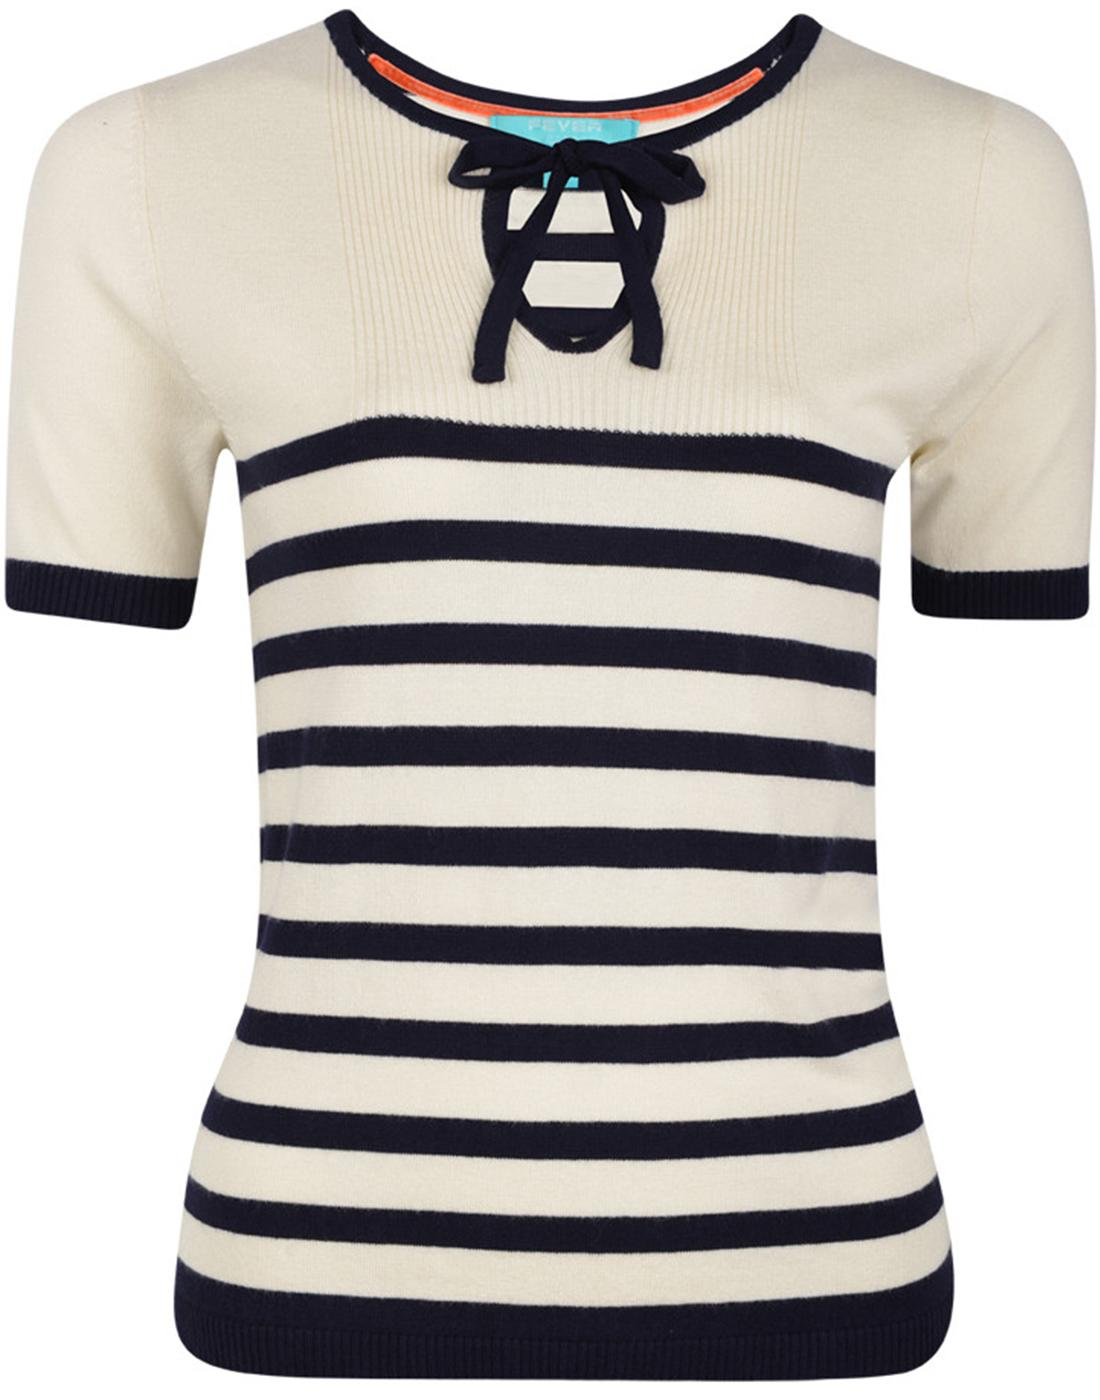 Hartland FEVER Retro Vintage Striped Knit Jumper